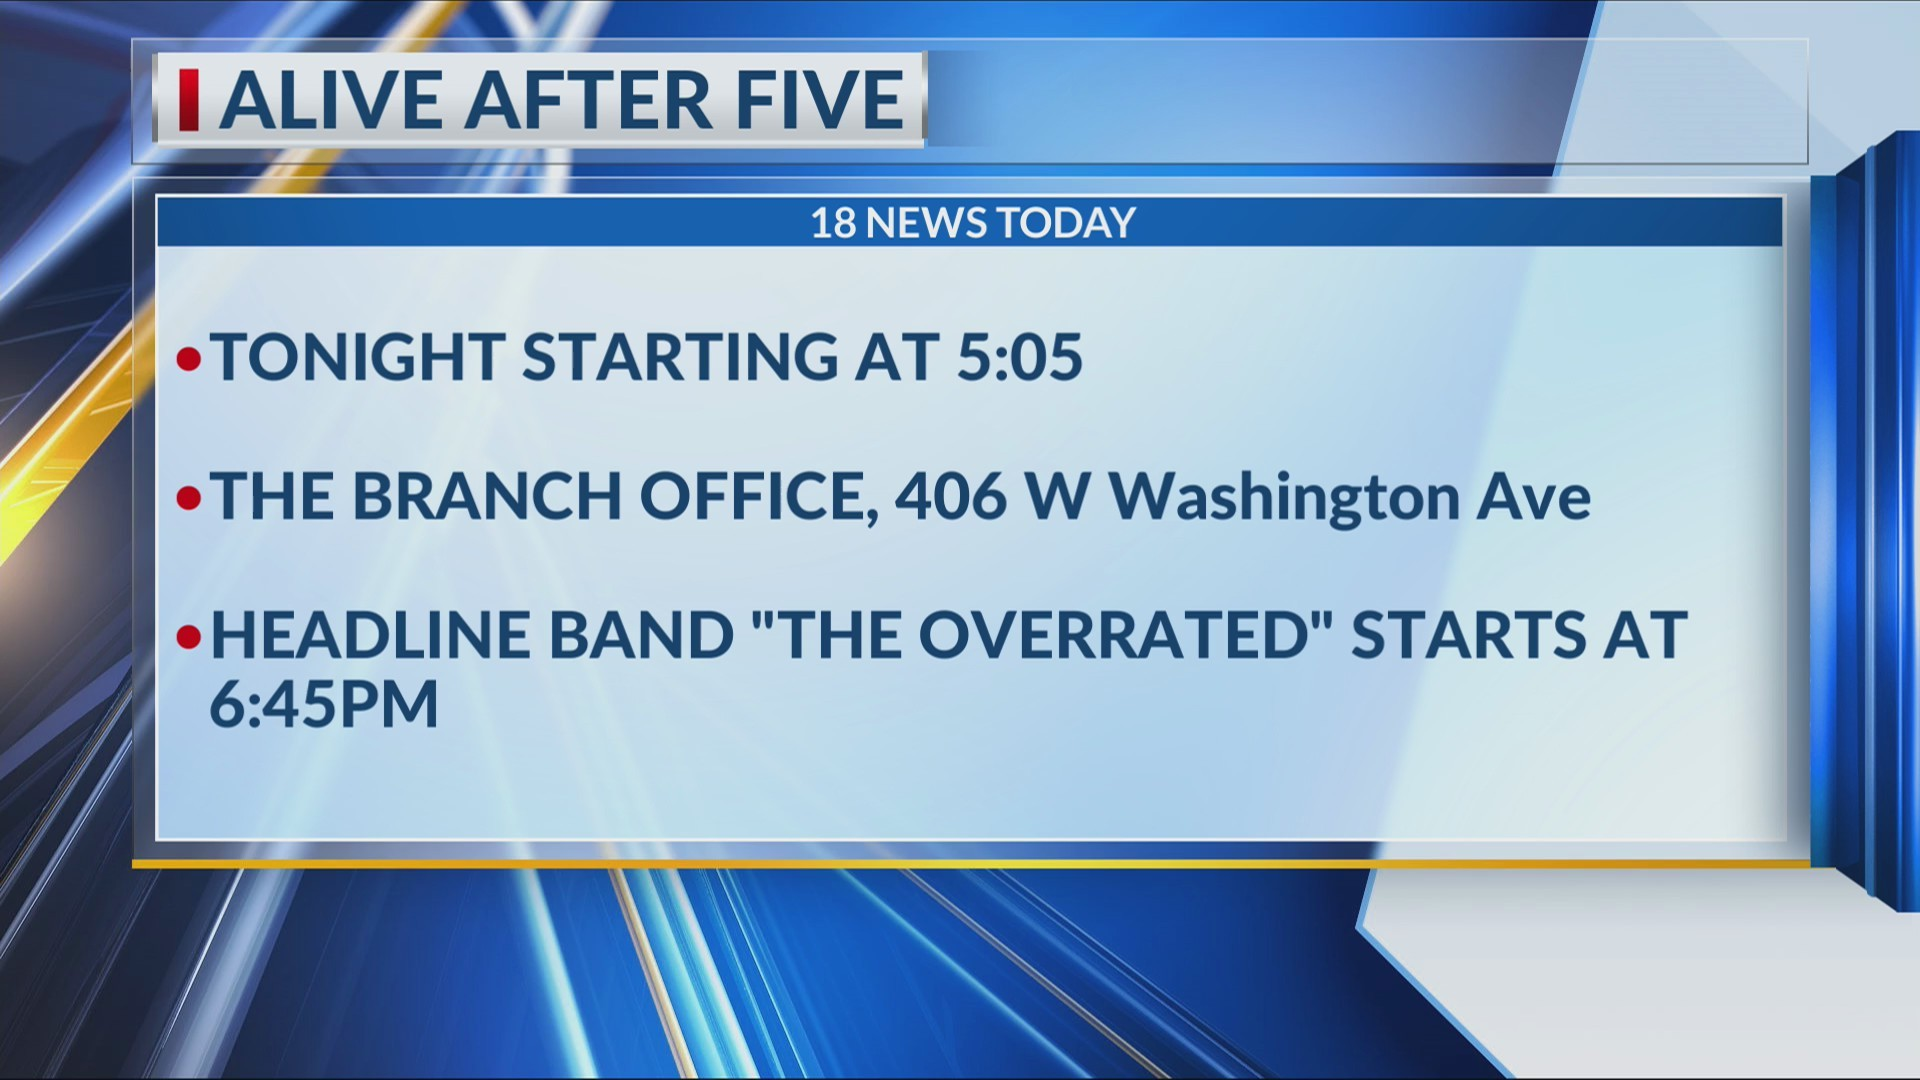 HAPPENING TODAY: First-time venue for Alive After Five